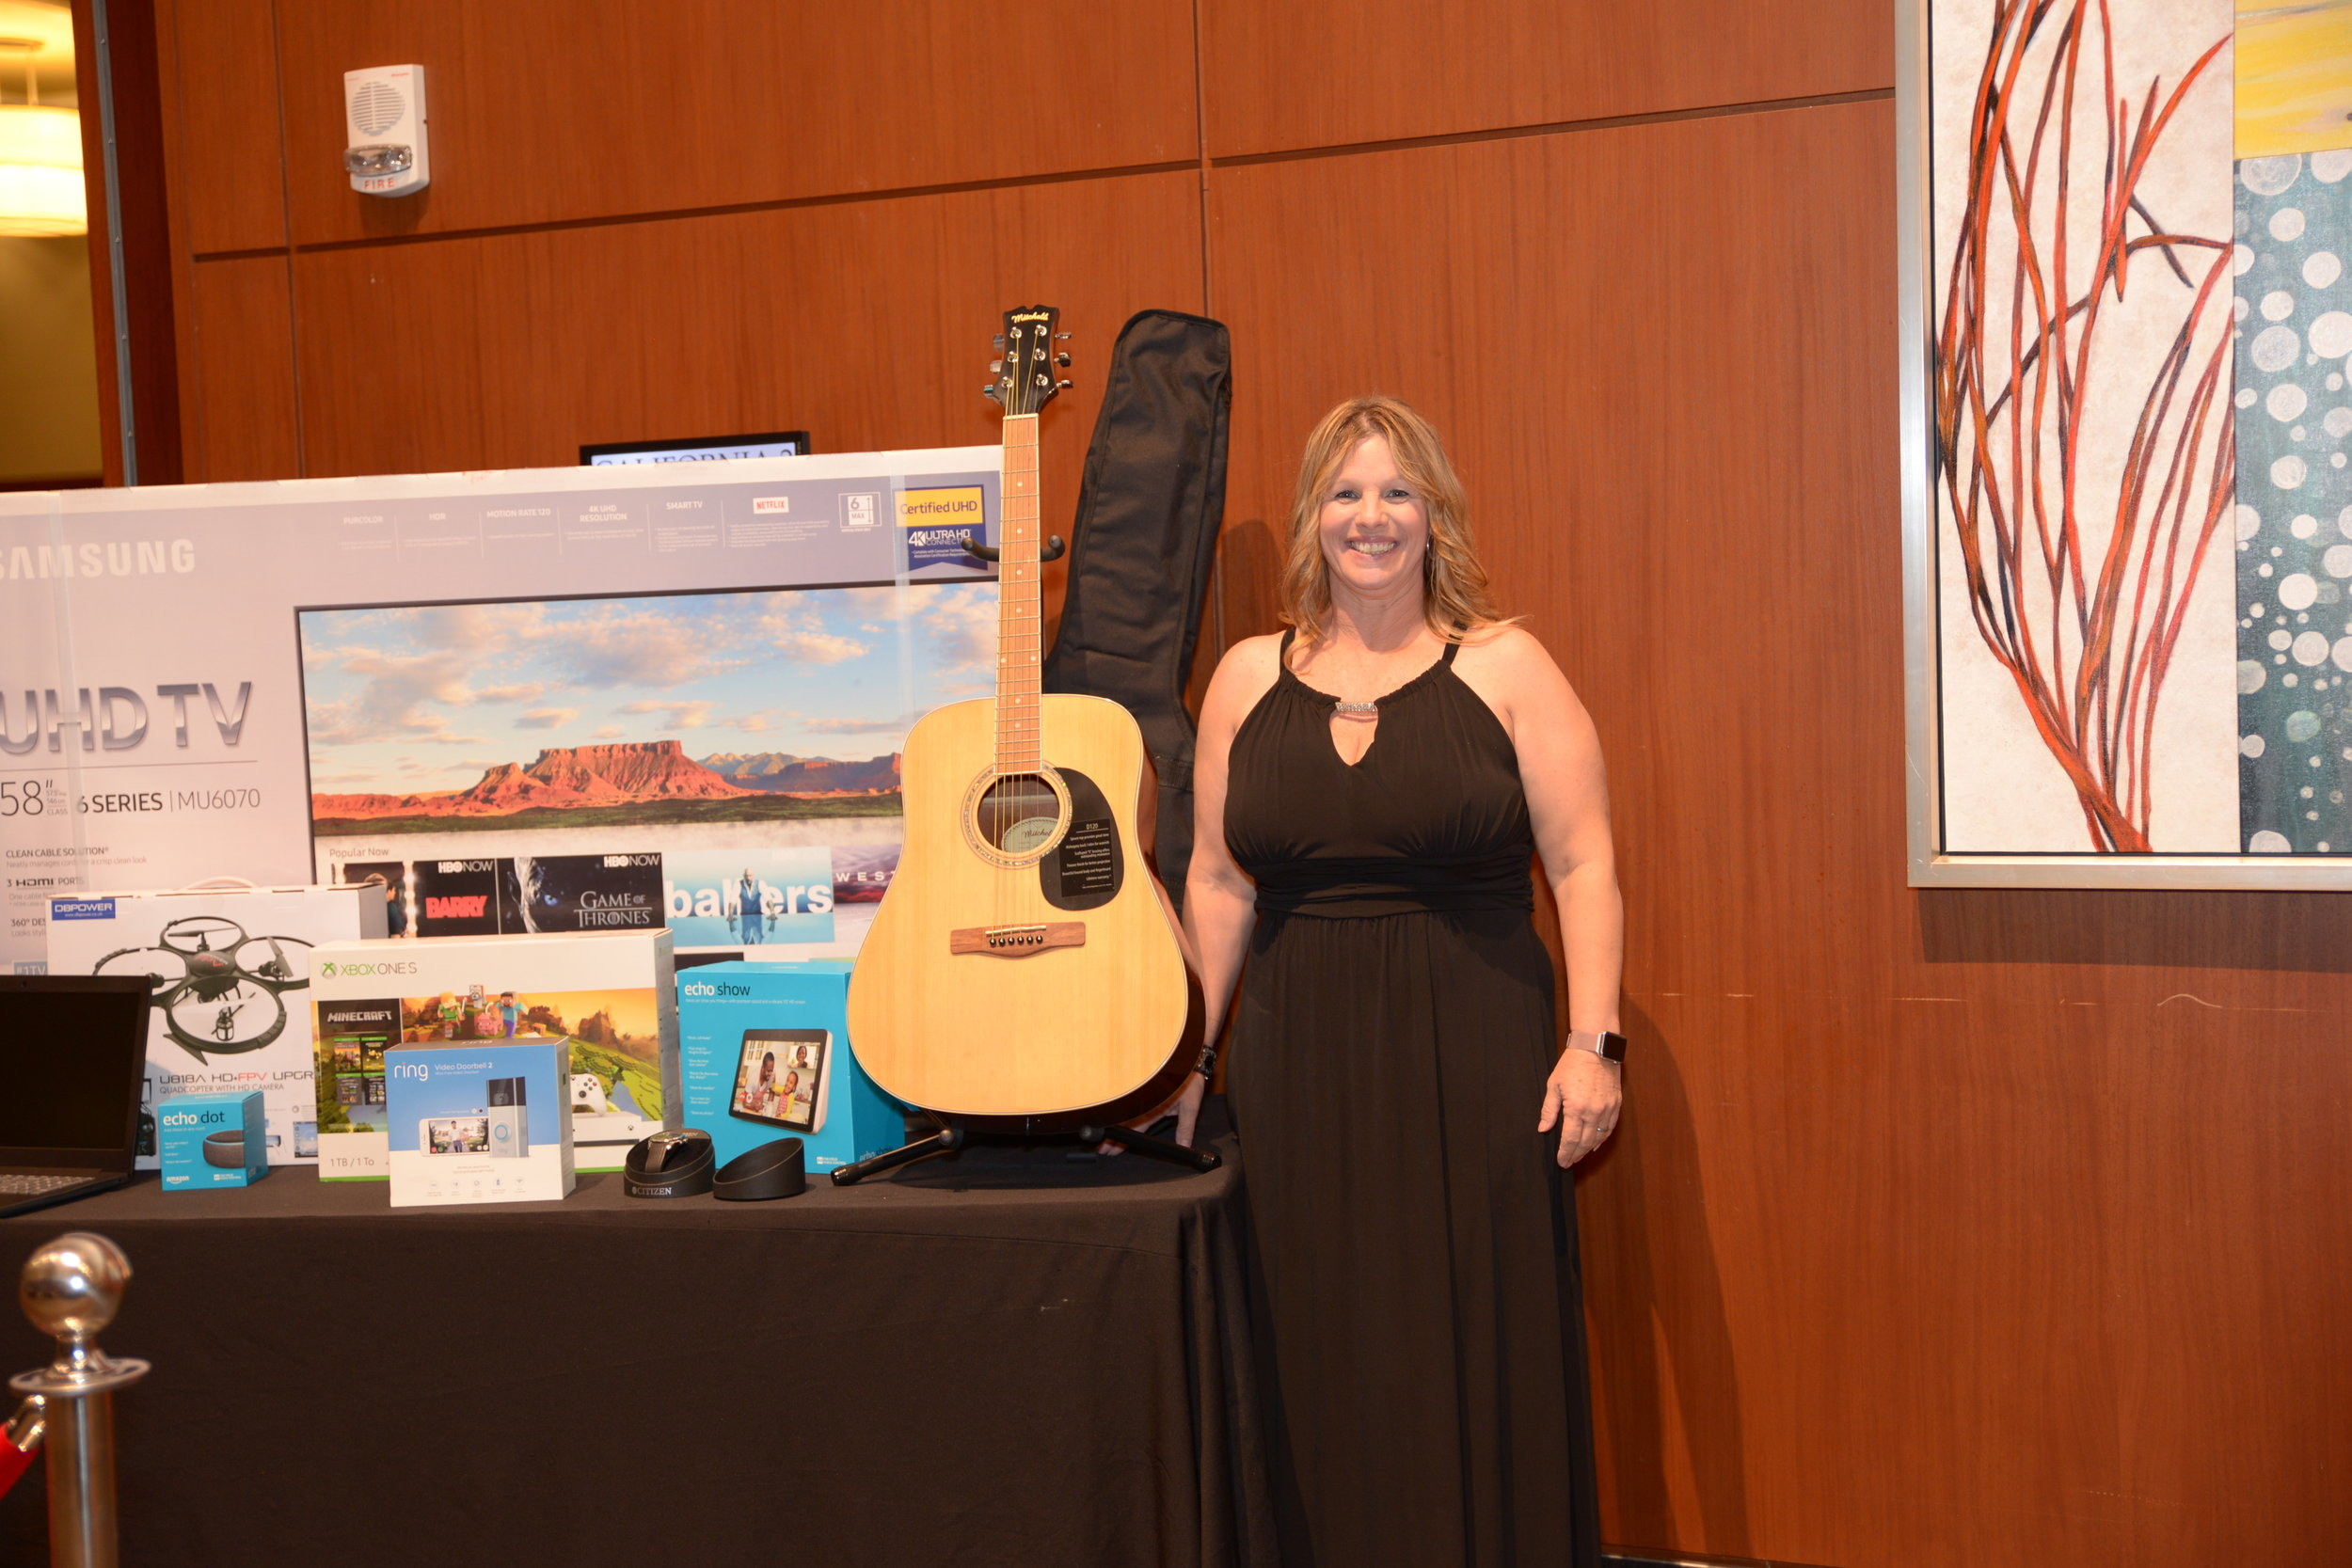 """Congratulations to Doris Martinez with AmeriFirst for winning the Opulent Opportunity Grand Prize! Doris went home with a Samsung - 58"""" Class Smart - 4K UHD TV with HDR, Mitchell D120PK Acoustic Guitar Value Package (Donated by Dottie Madison, Guitar Center), Lenovo 15.6"""" Laptop, Echo Dot (3rd Gen) - Smart speaker with Alexa, Xbox One S 1TB Minecraft Creator Bundle, Ring Video Doorbell 2, Echo Show (Donated by David Nelson, Nelson Engineers), DBPOWER Discovery Wifi FPV Camera Drone, Angels vs Dodgers (4 tickets + parking, Donated by Ray Allard, Allard Engineering), Citizen Men's Solar Wristwatch, & a One Week Stay at Private Condo Resort in Palm Desert (Donated Hunsaker & Associates)."""